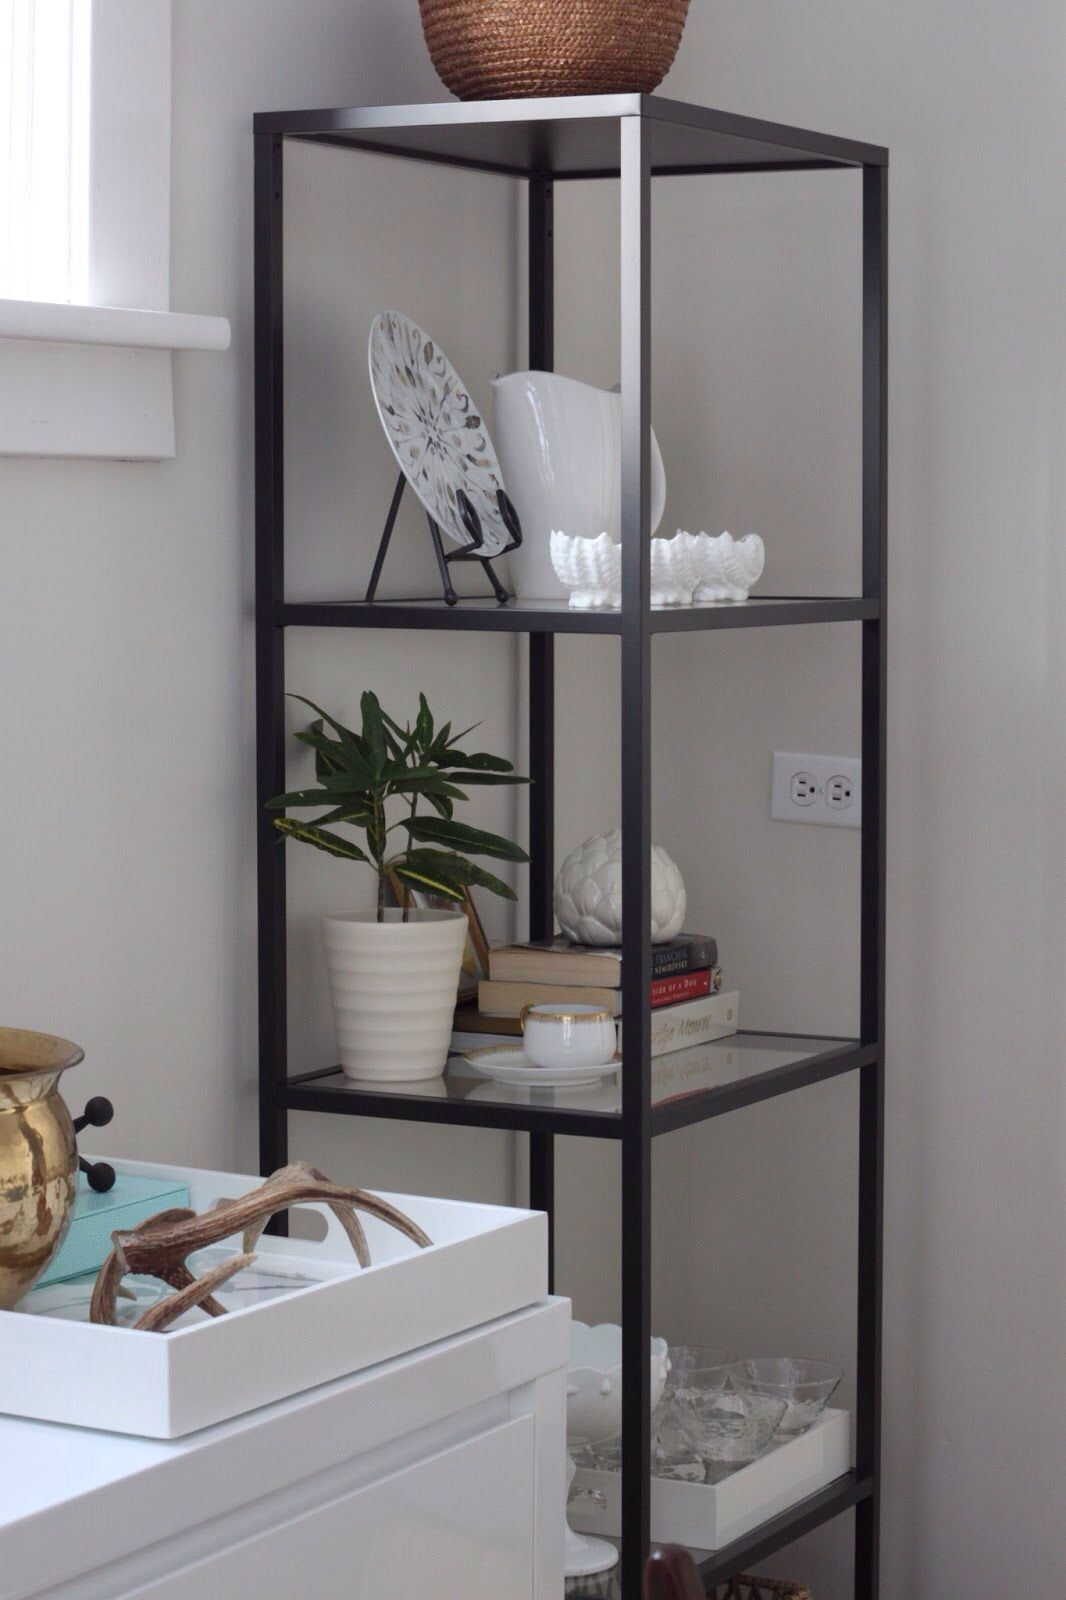 Dining Room Shelf Ideas Vittsjo Homey In 2019 Ikea Shelves Ikea Vittsjo Ikea